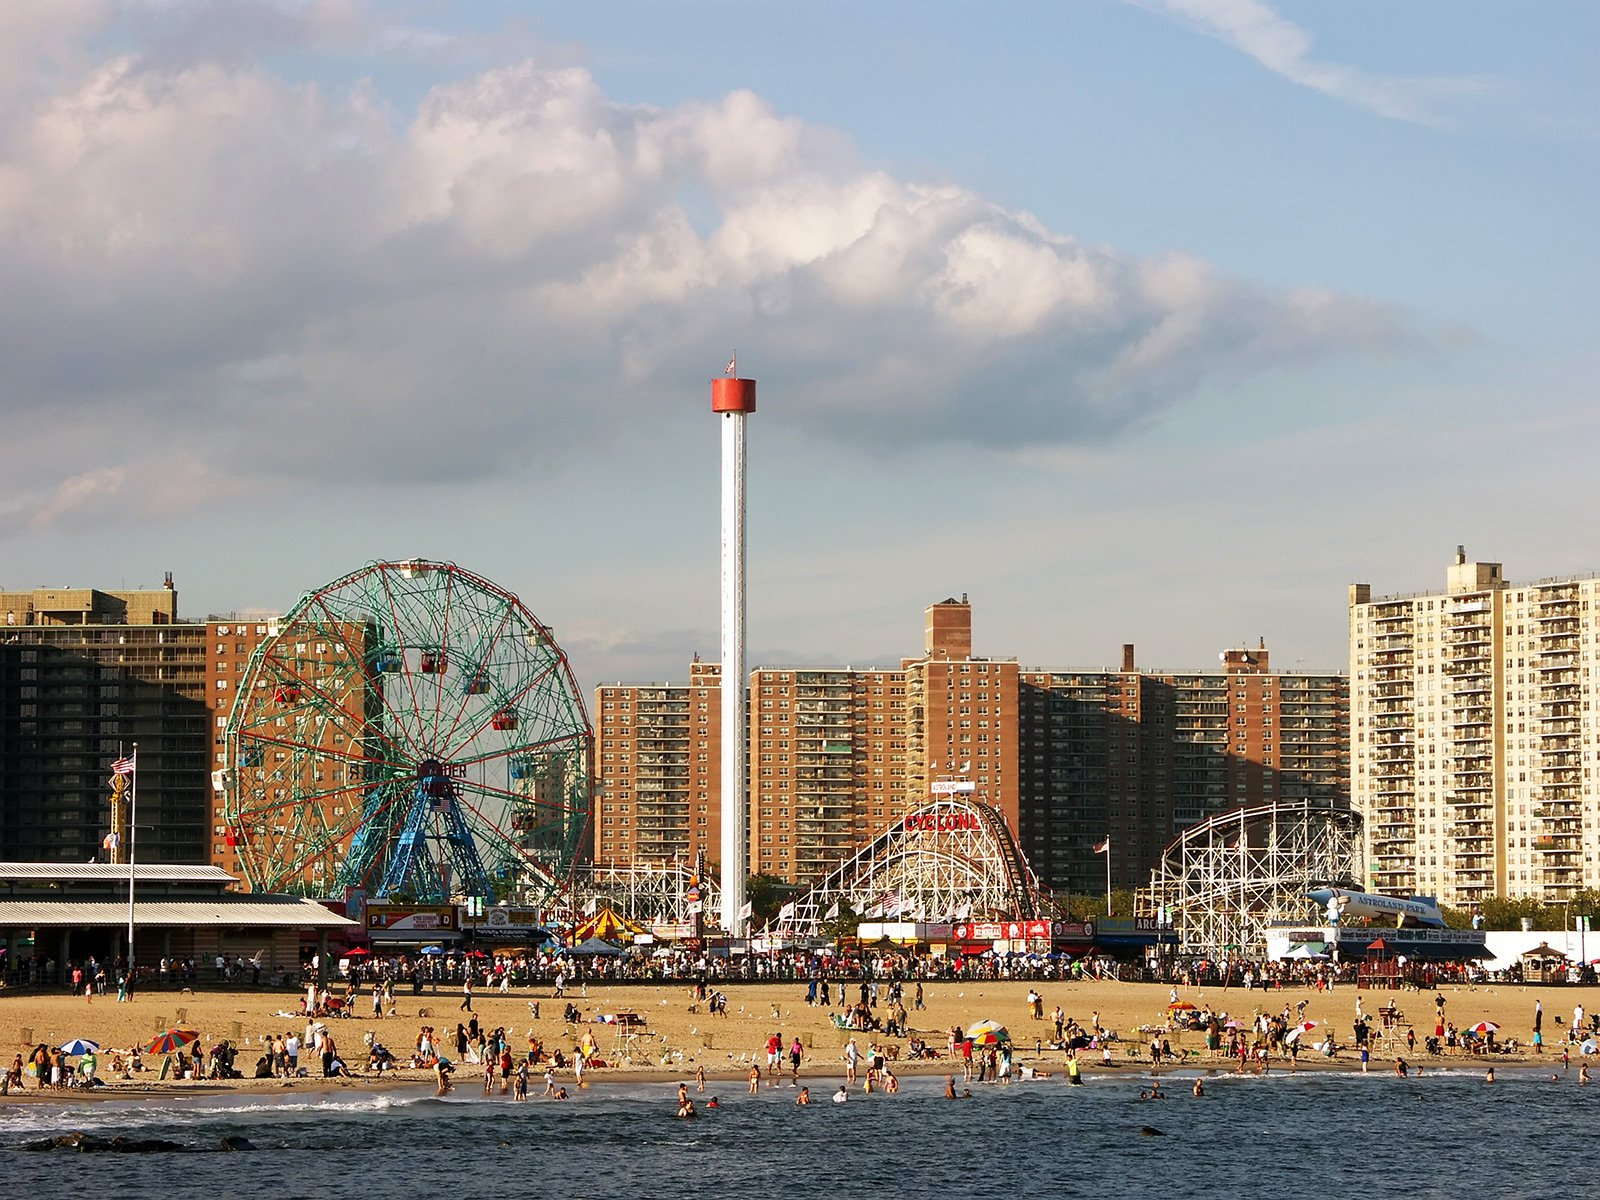 Coney Island, New York